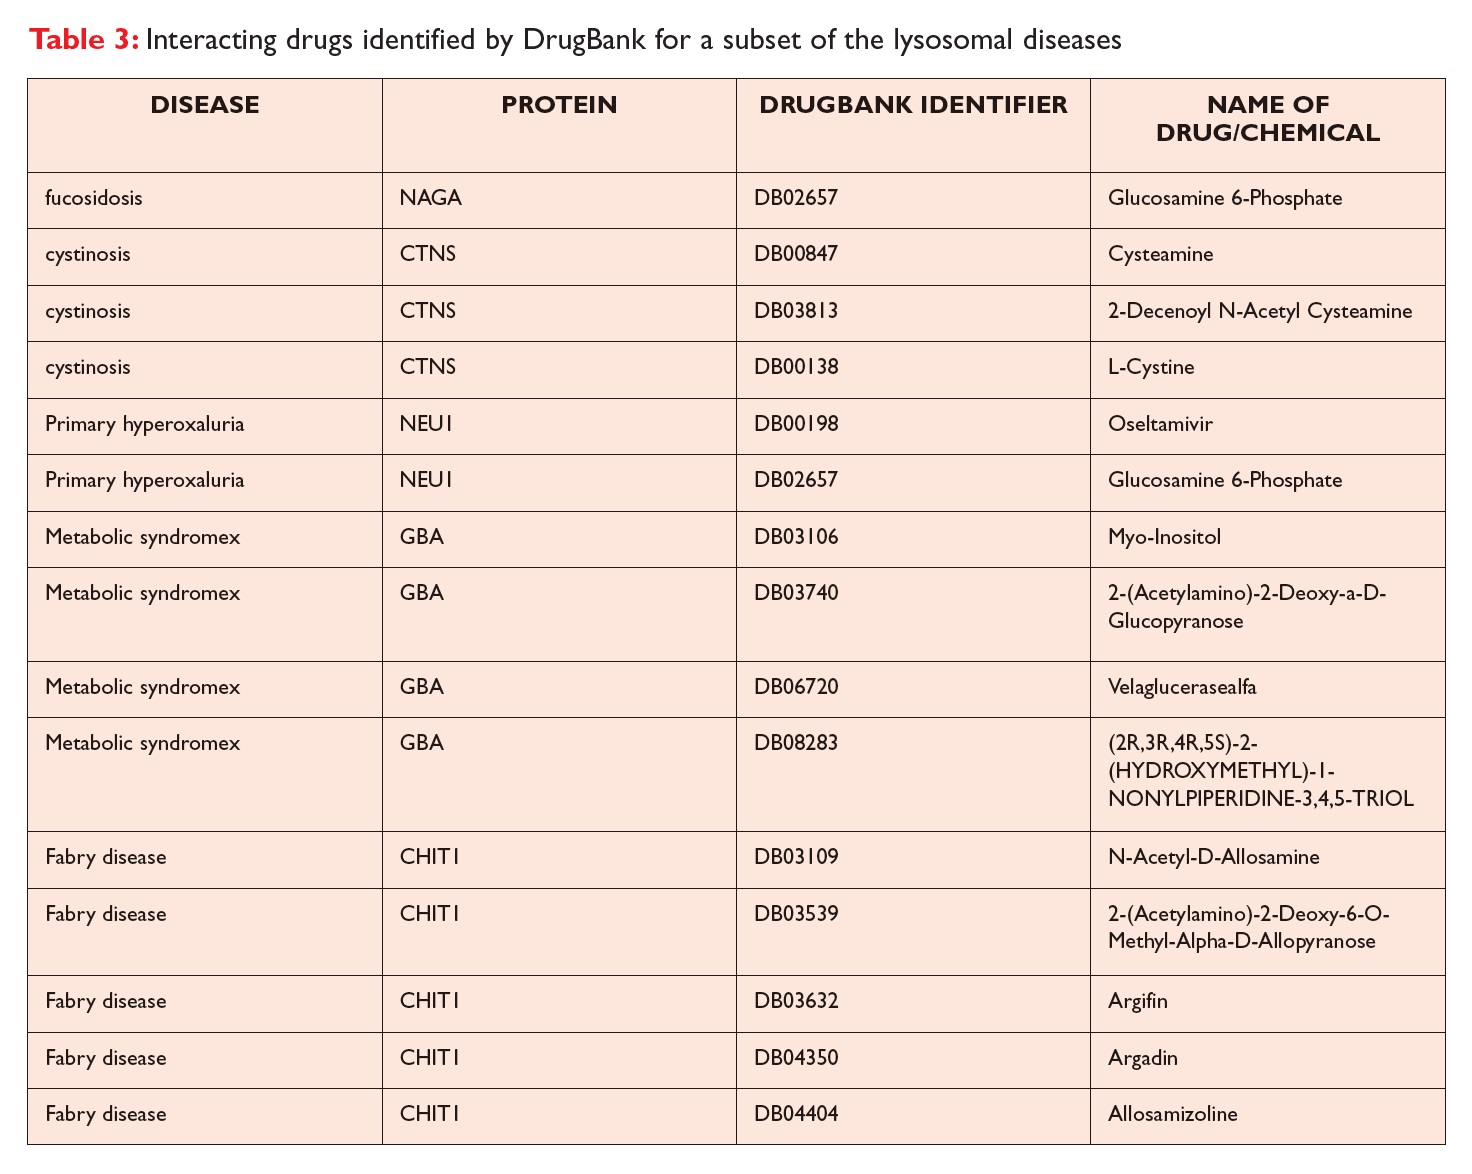 Table 3 Interacting drugs identified by DrugBank for a subset of the lysosomal diseases